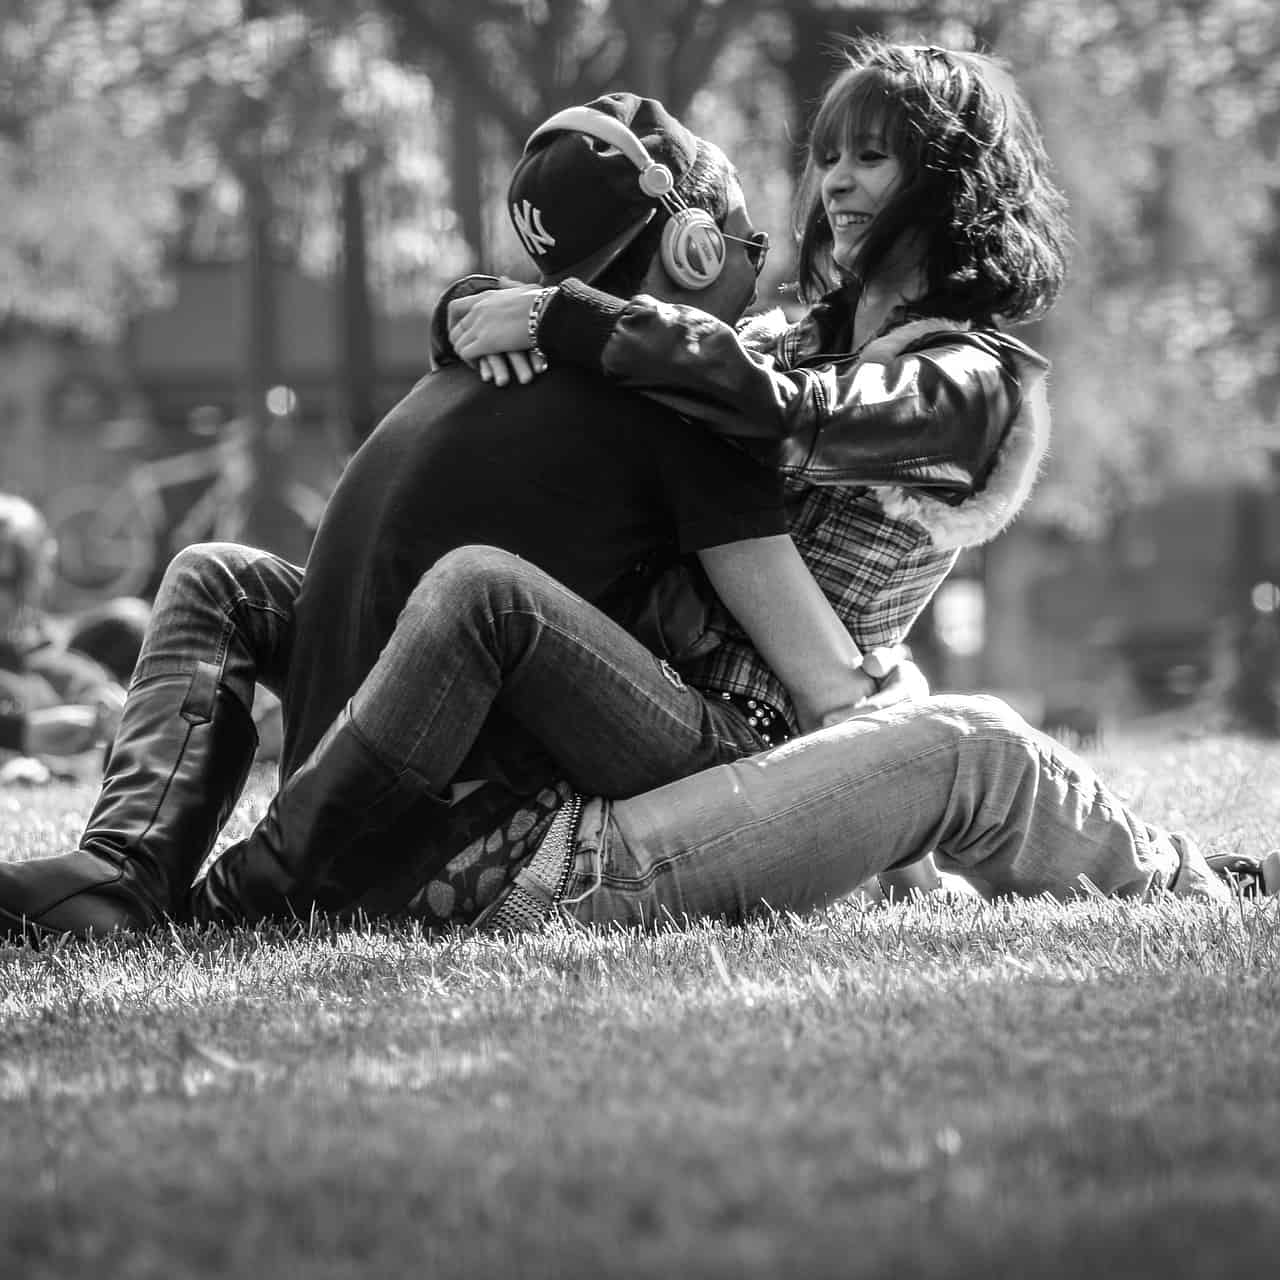 How to Get Intimate with Your Partner Without Having Copulation